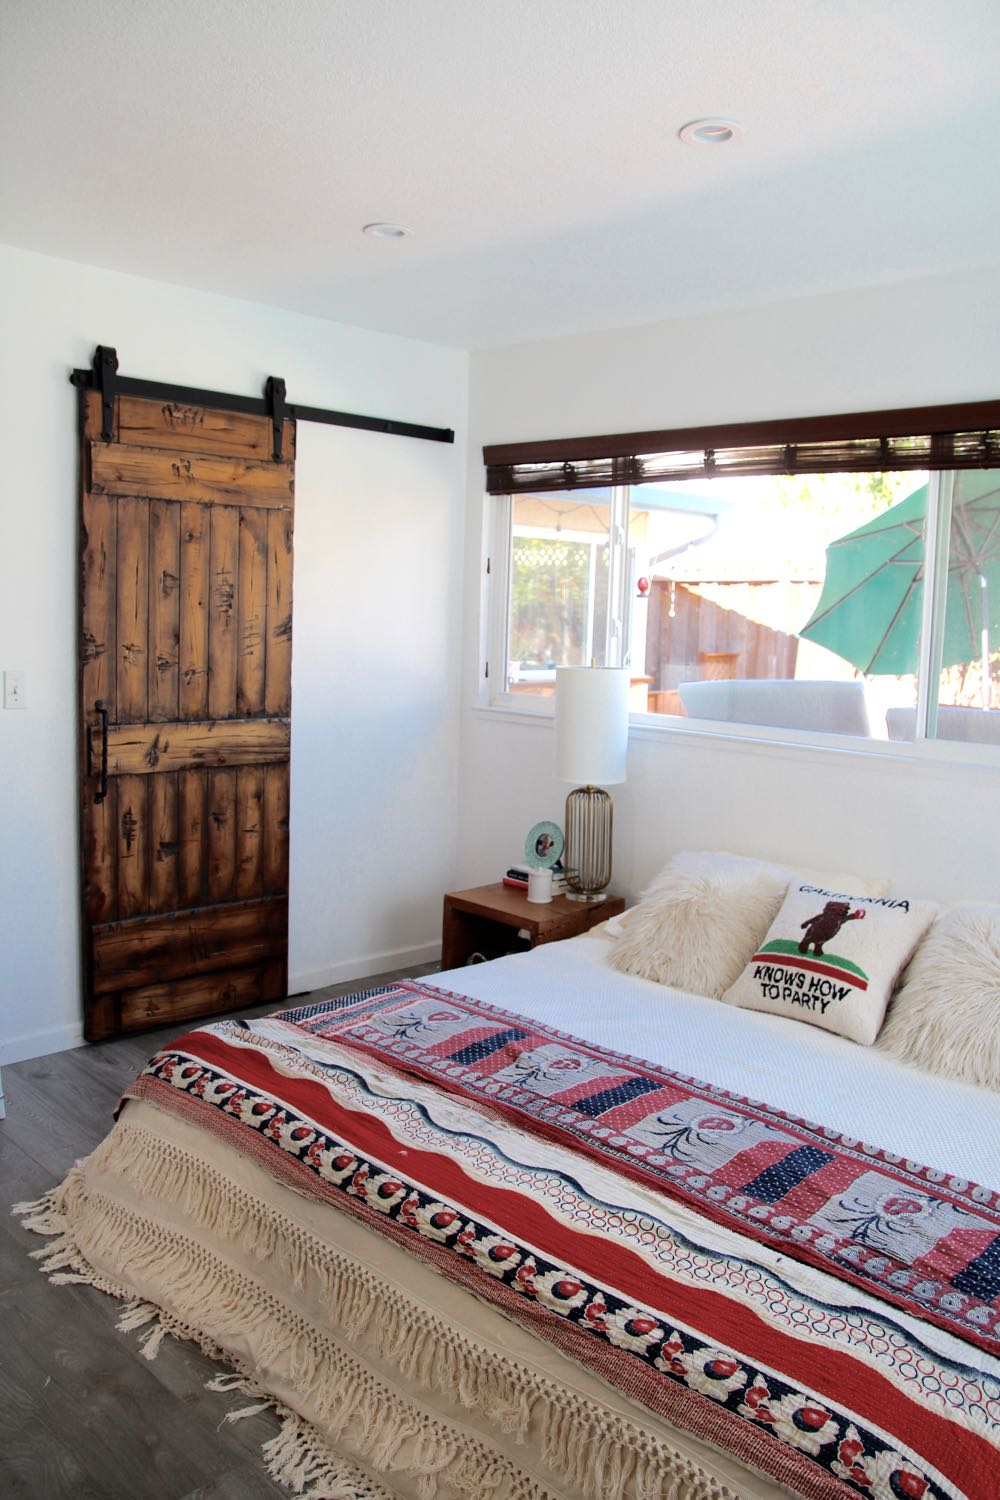 Vintage kantha throw used as a bedspread